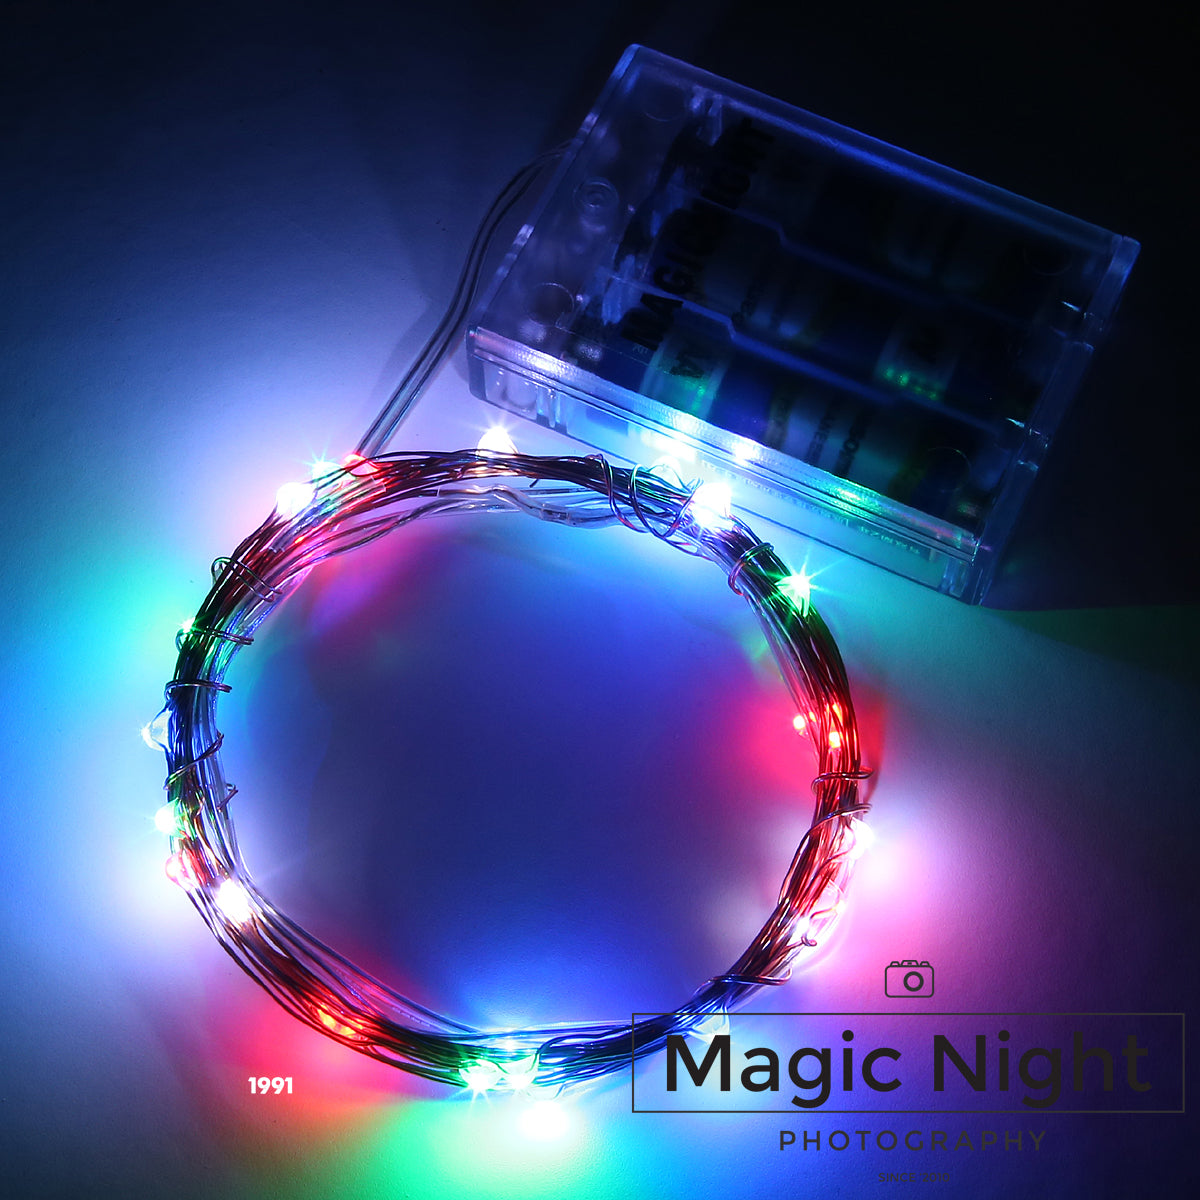 Magicnight battery powered operated led string starry light 30 leds magicnight battery powered operated led string starry light 30 leds aloadofball Gallery